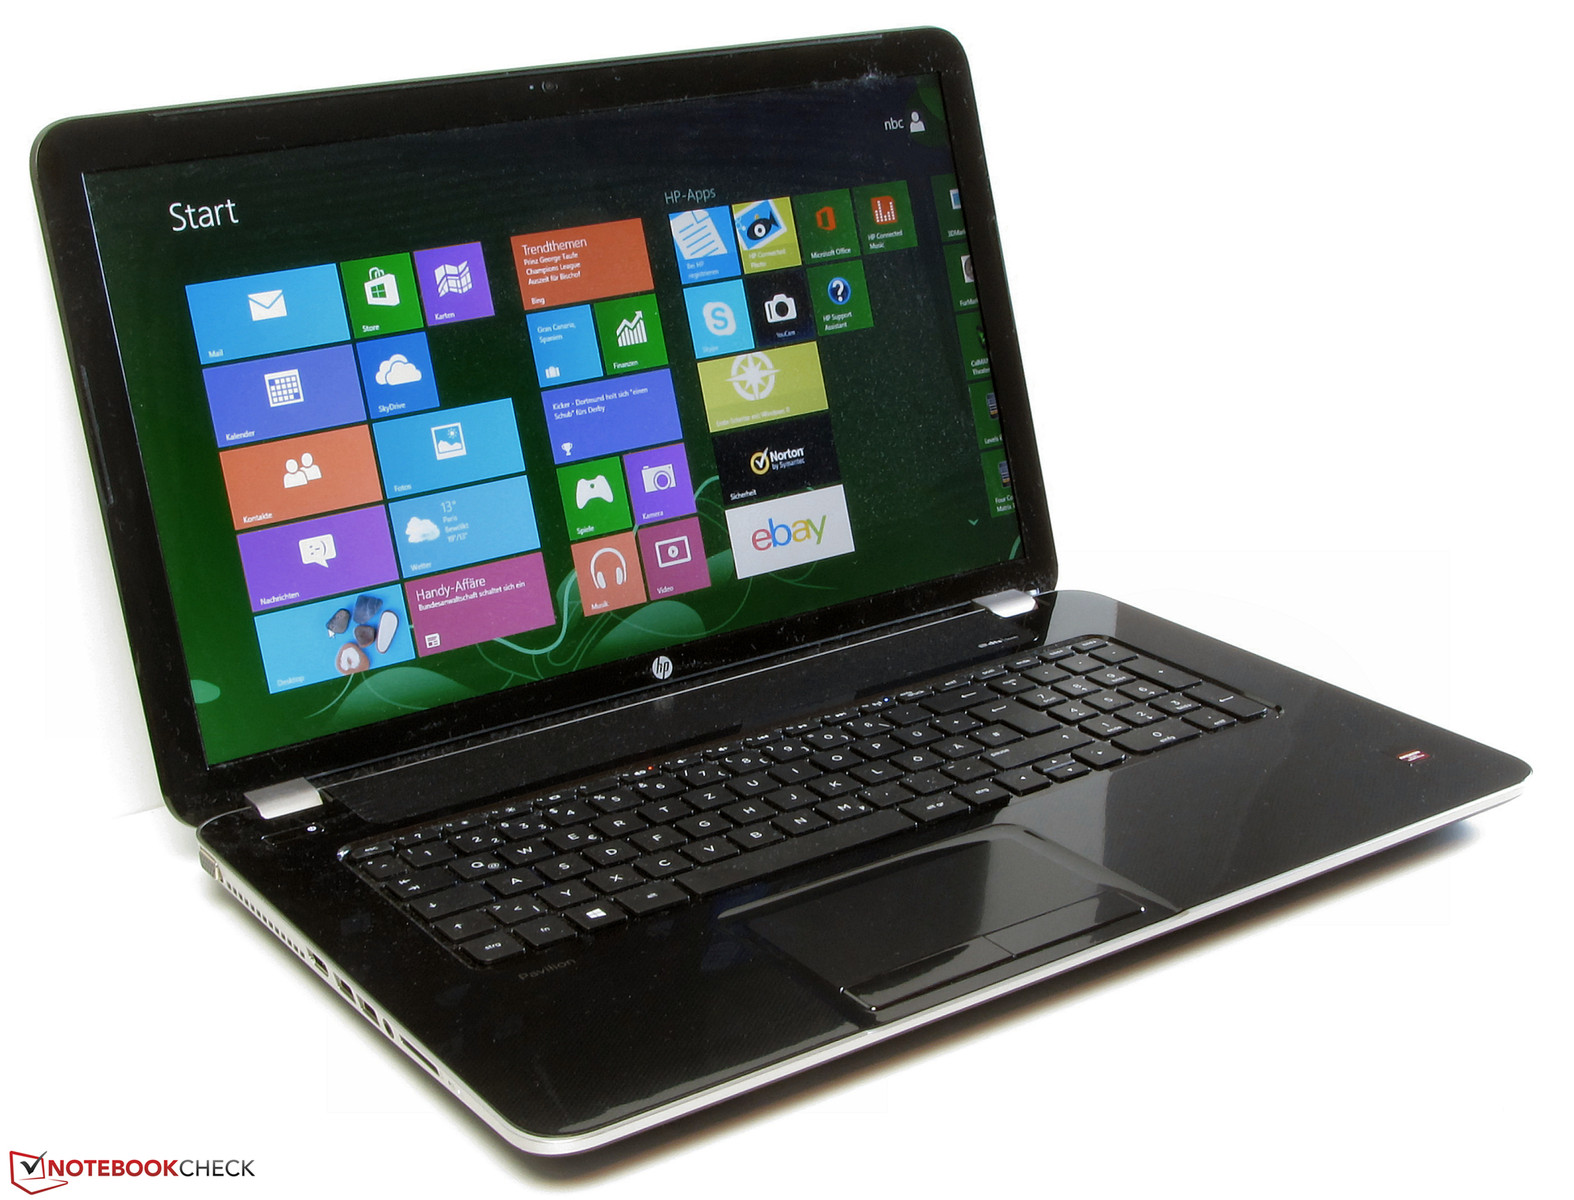 Review HP Pavilion 17 E054sg Notebook